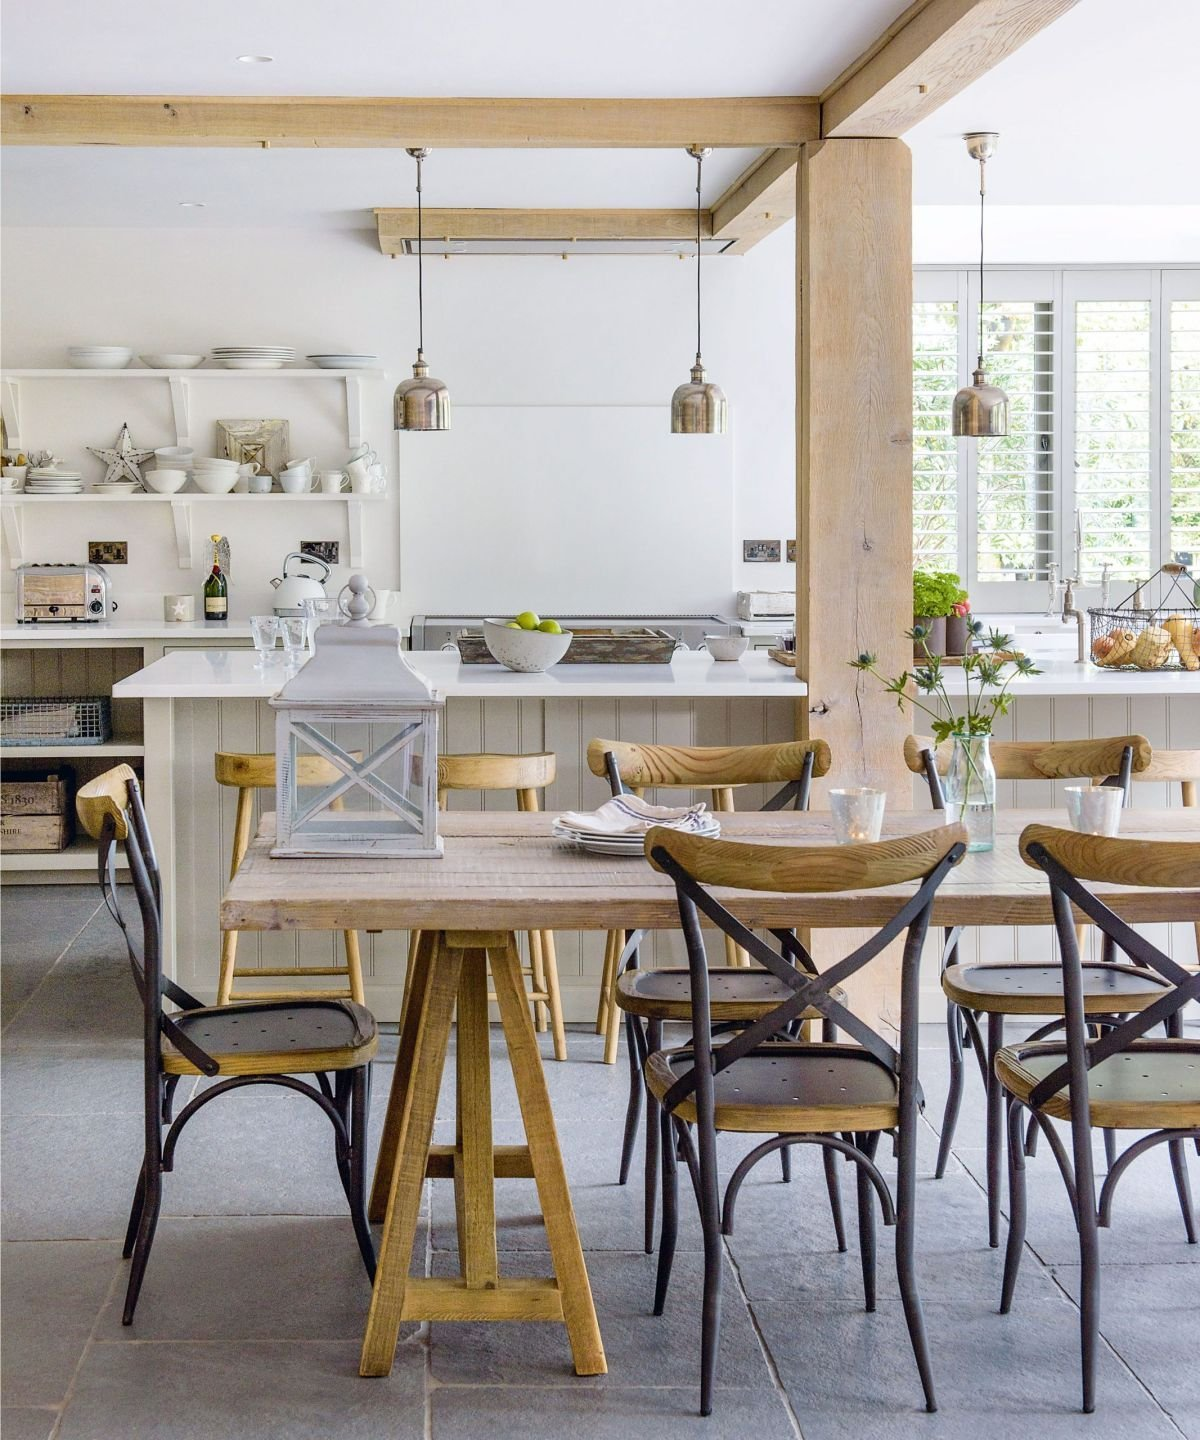 Achieve farmhouse, rustic design at home with these inspiring ideas